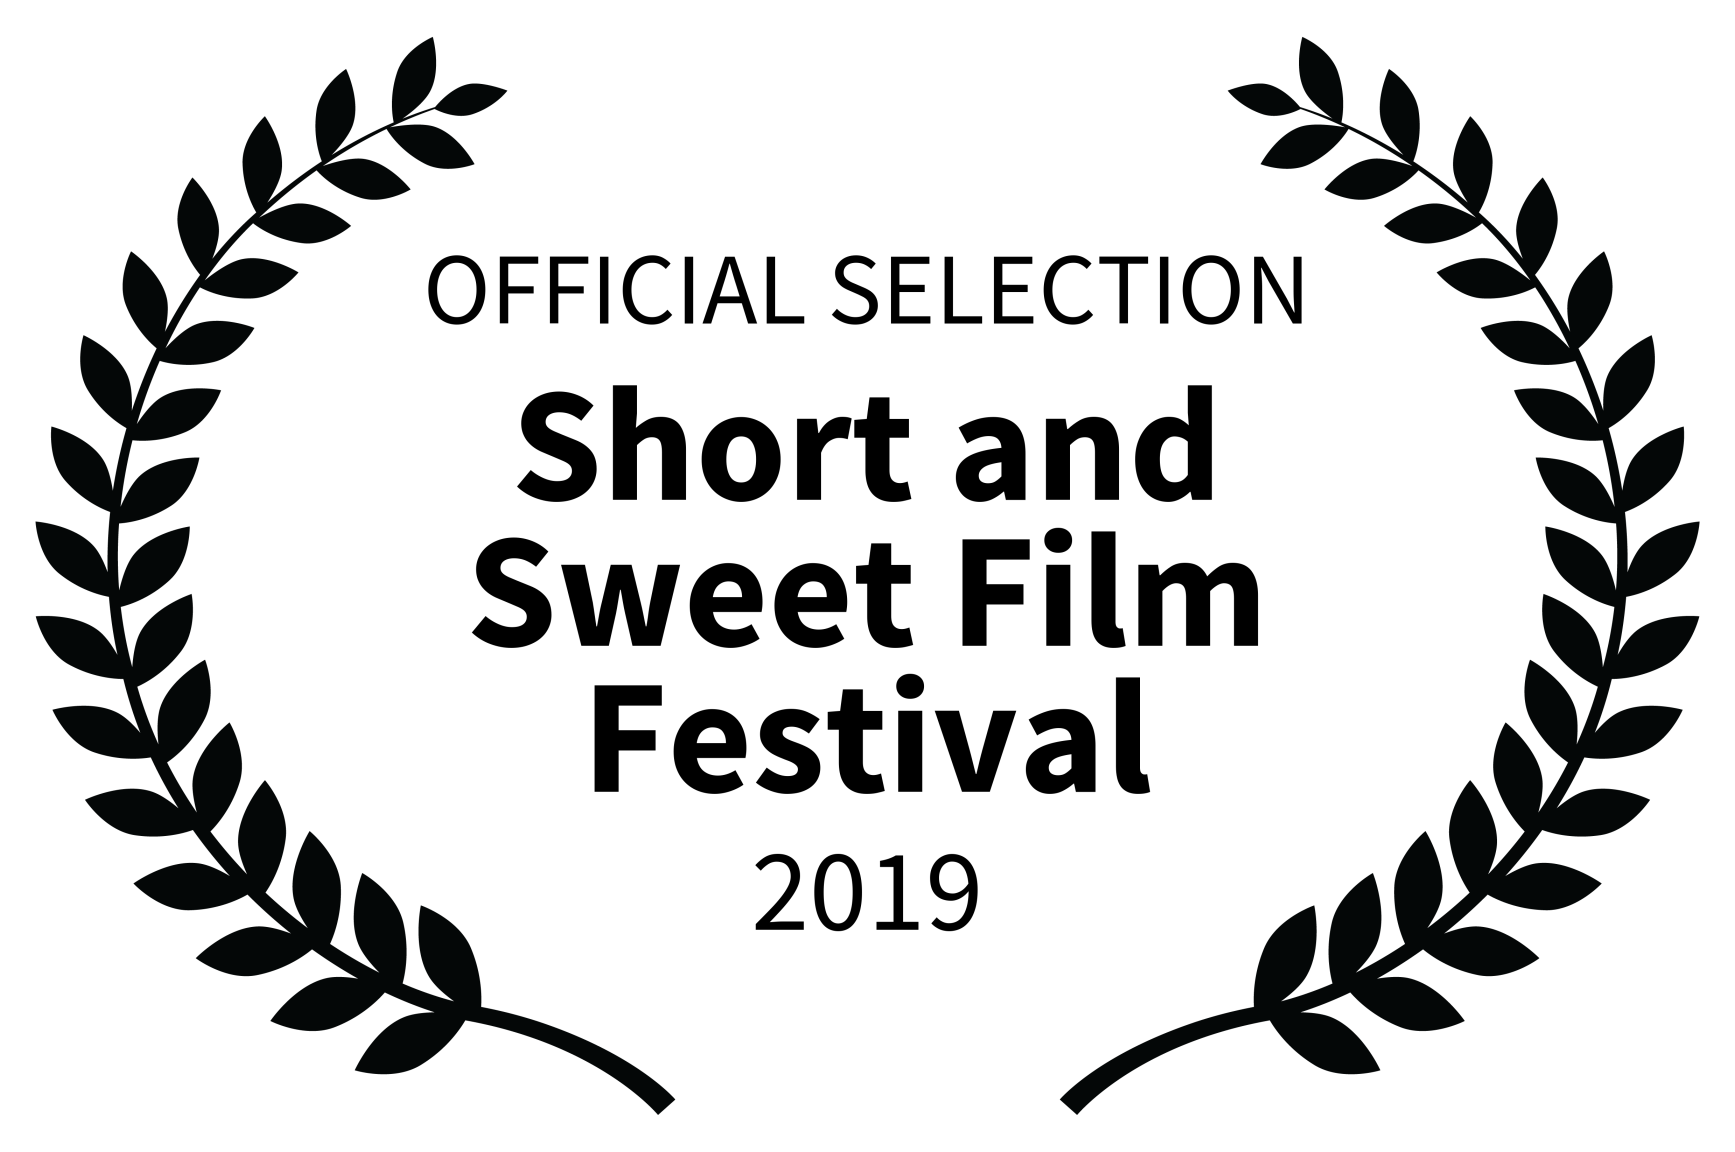 OFFICIAL SELECTION - Short and Sweet Film Festival - 2019